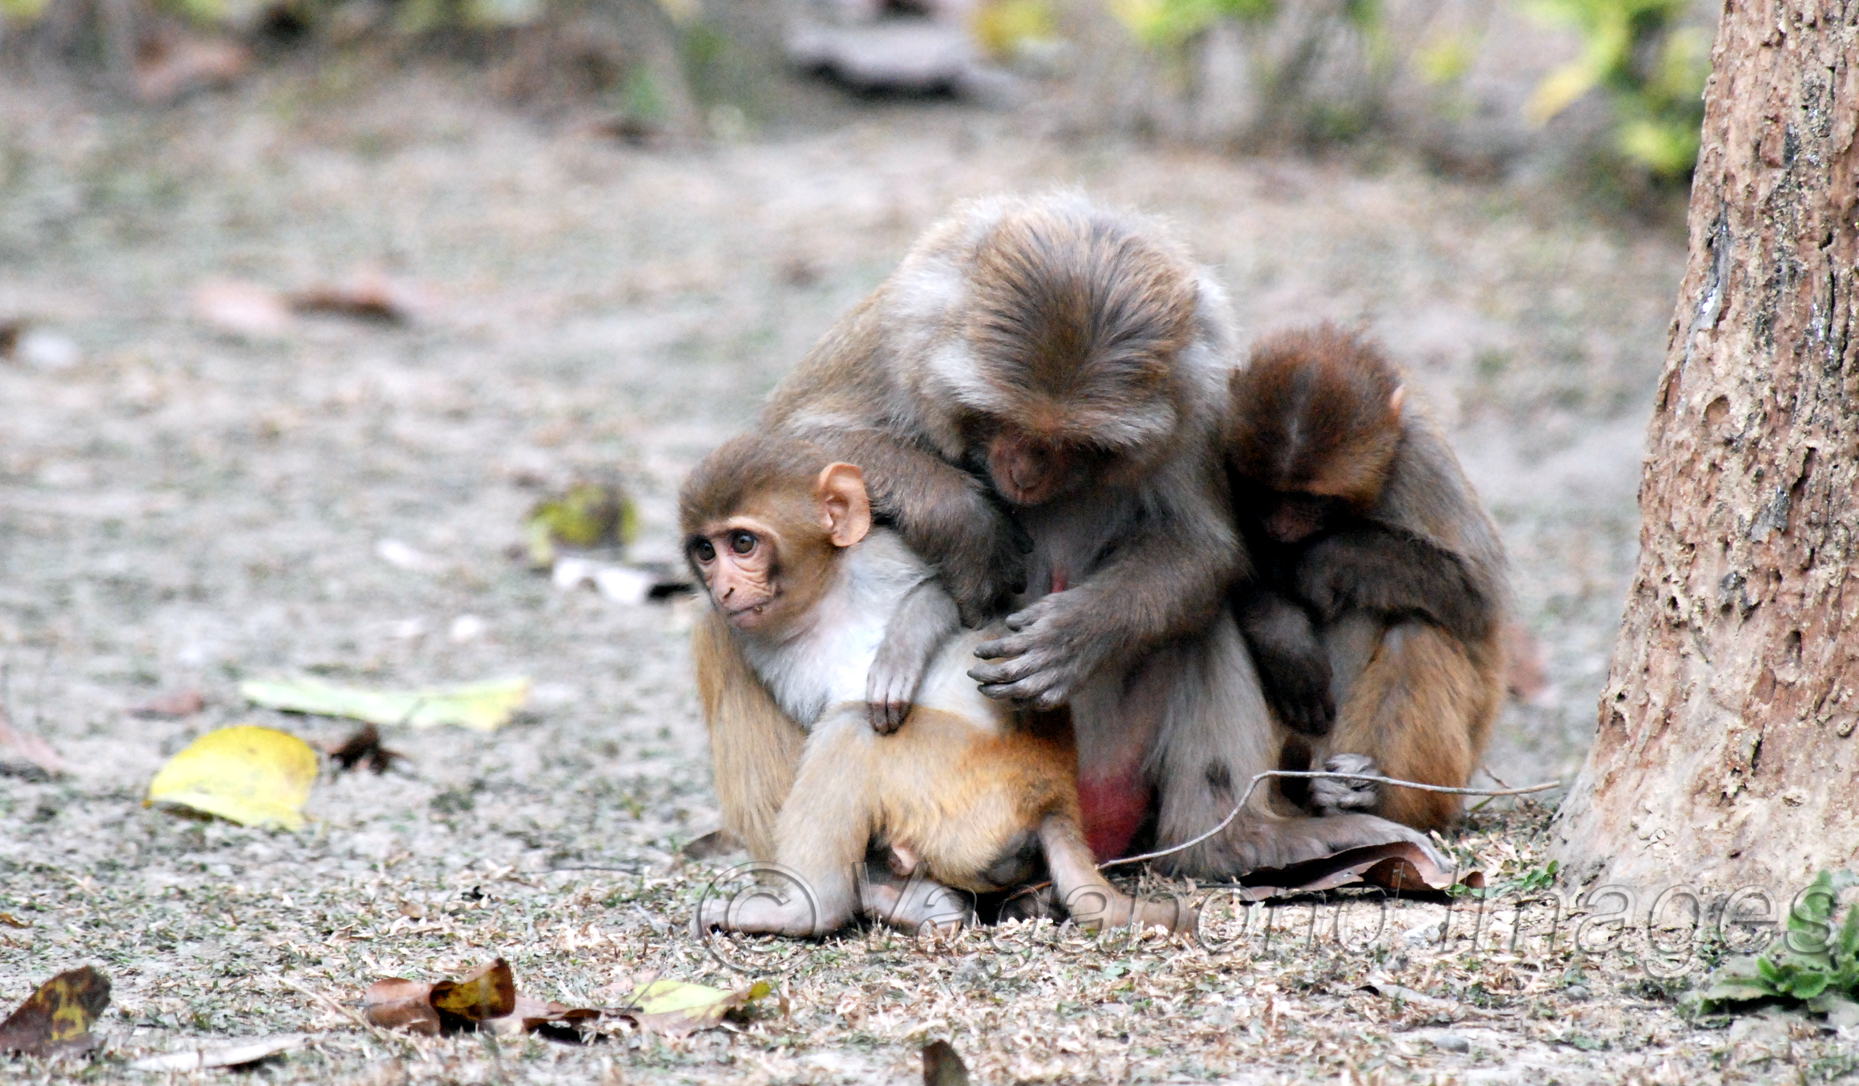 A monkey family enoying some sunshine!